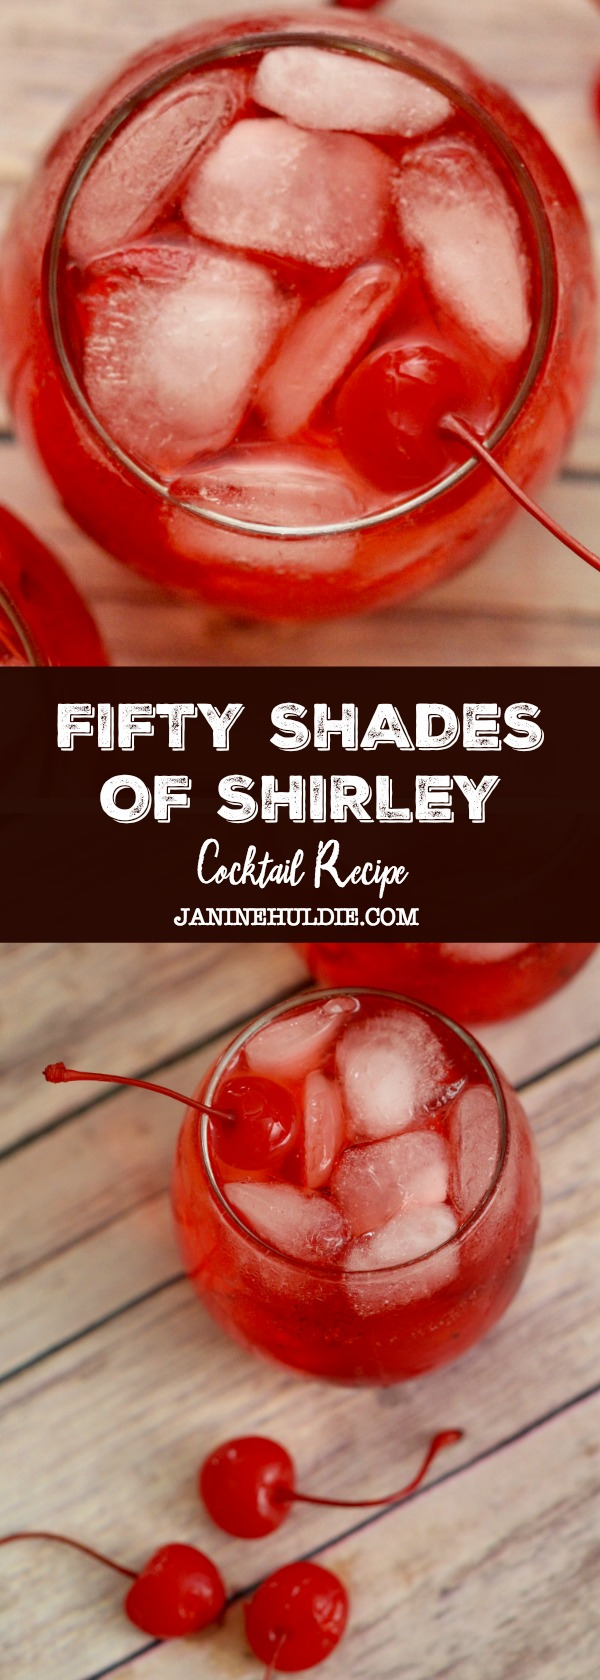 Fifty Shades of Shirley Cocktail Recipe